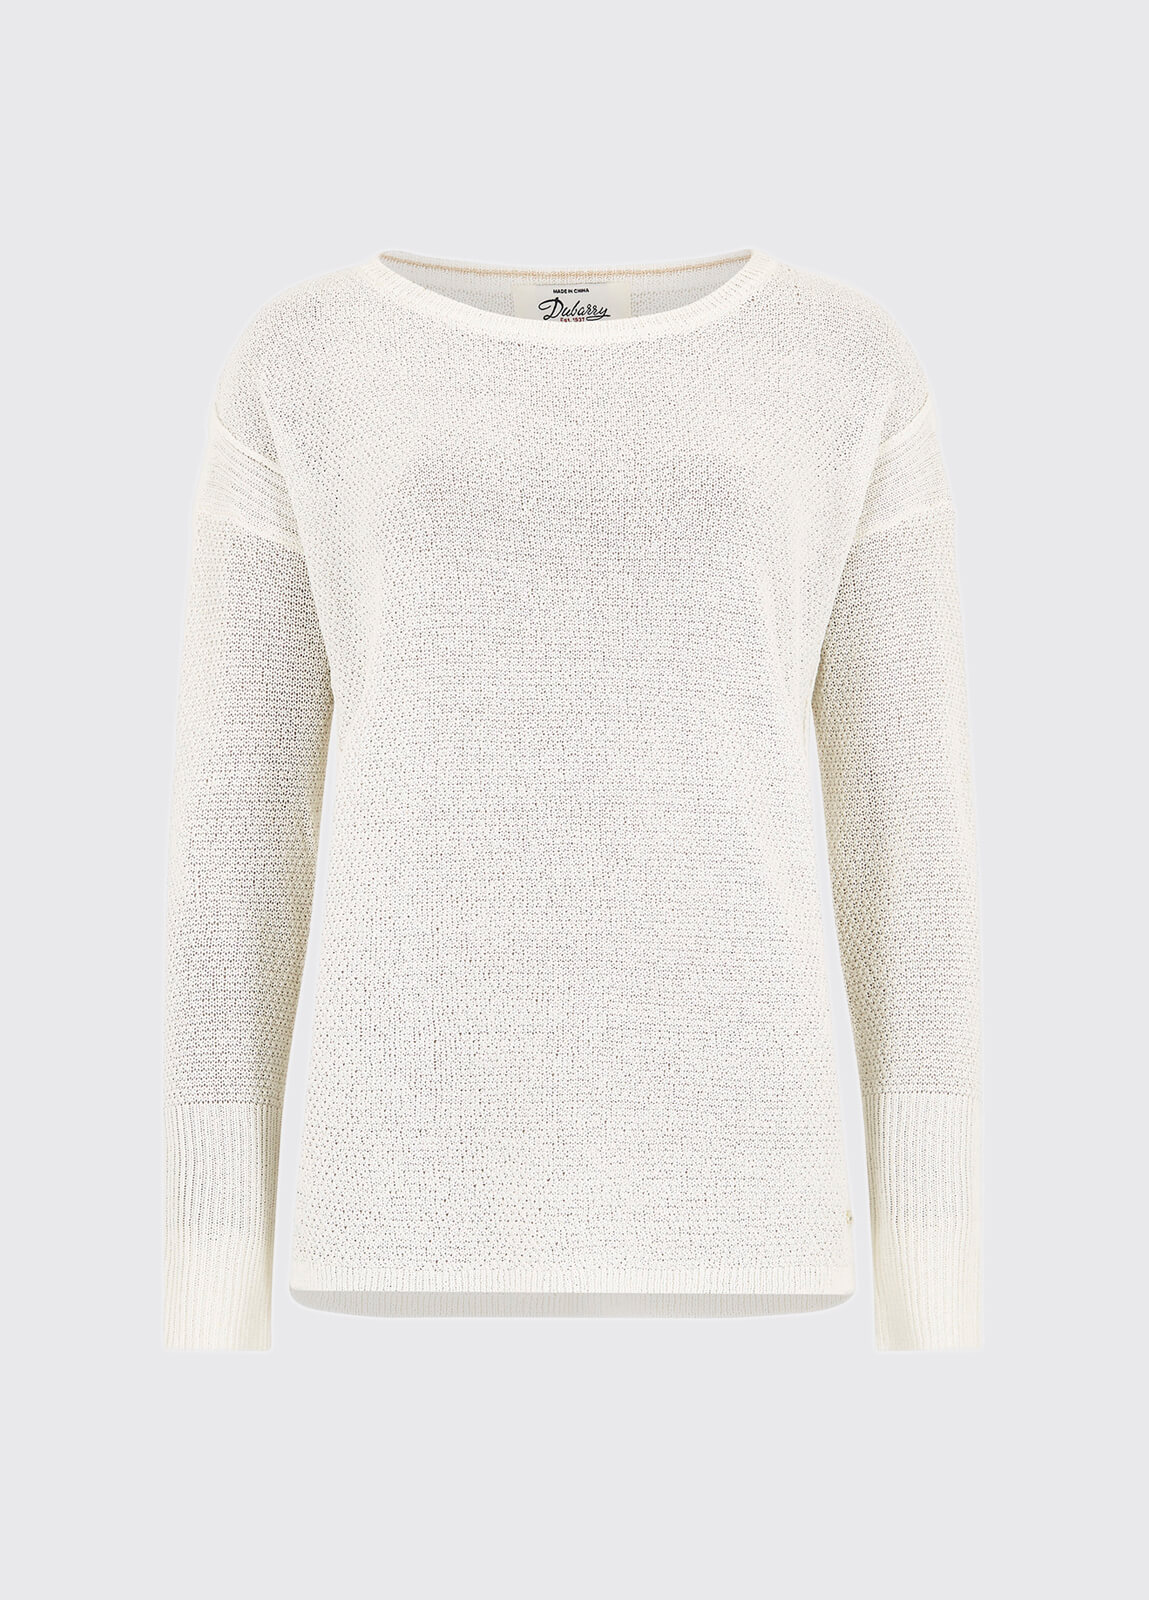 Woodford Knit Top - White